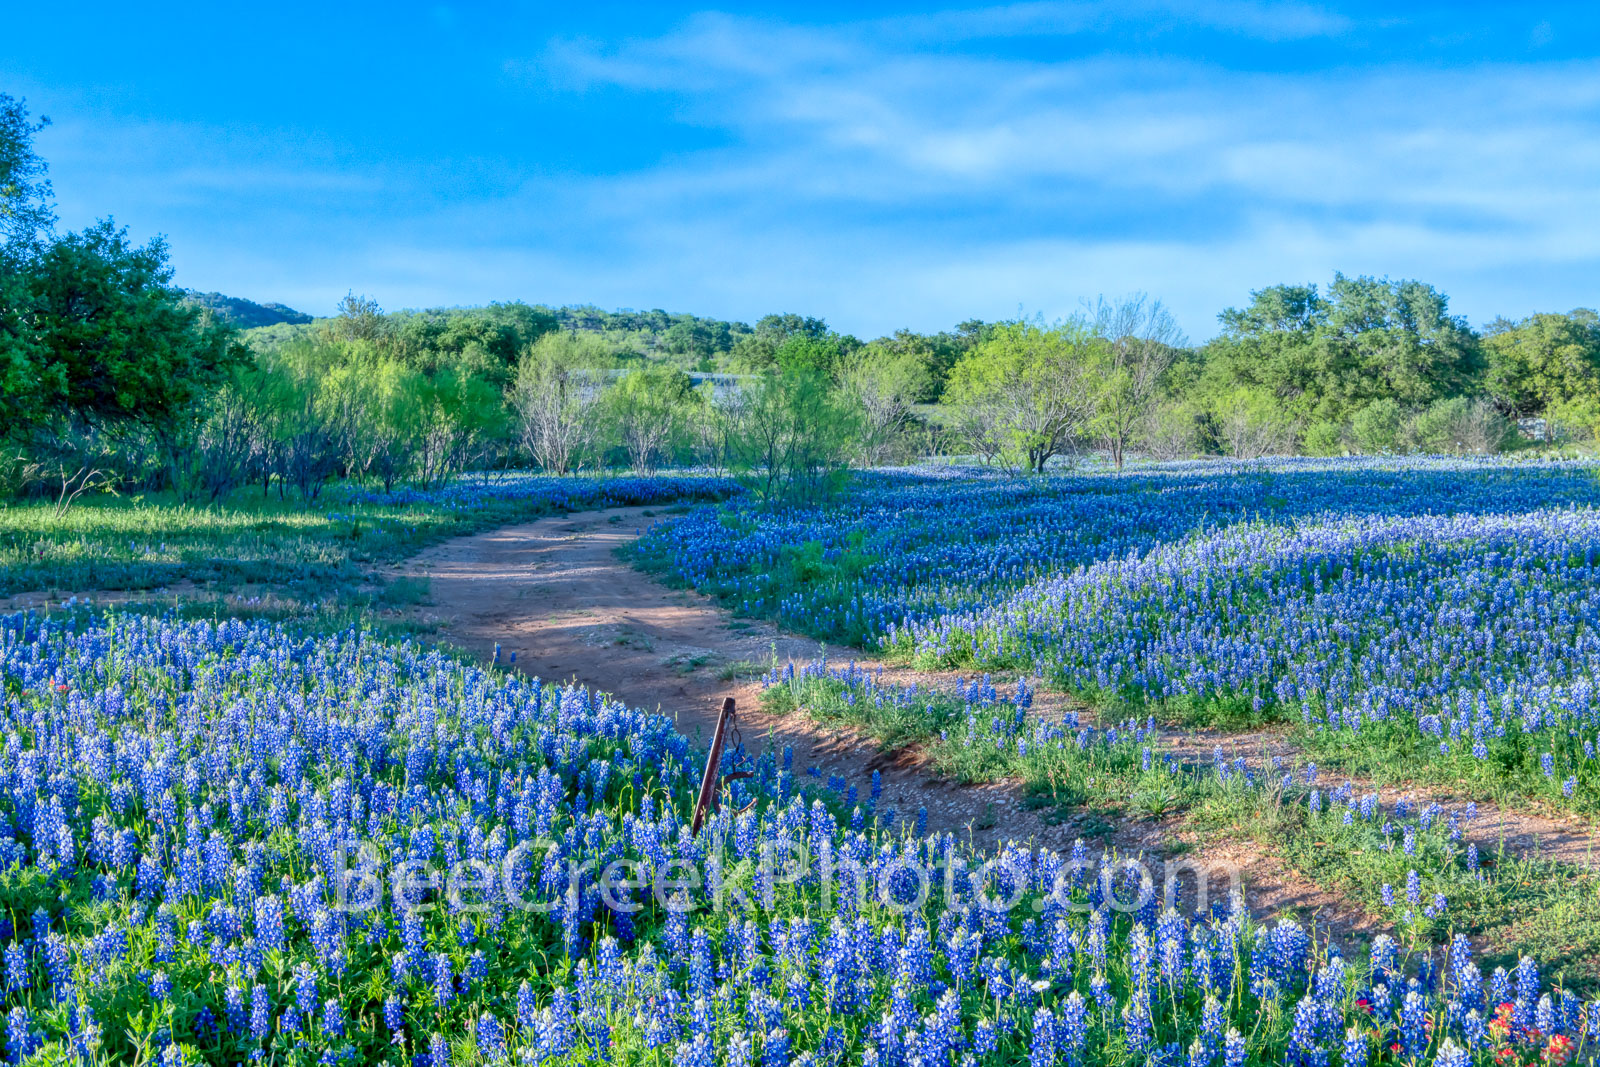 Shadows Across Bluebonnets 2 - We came across this bluebonnet field in the Texas Hill Country and like the way the low angle...